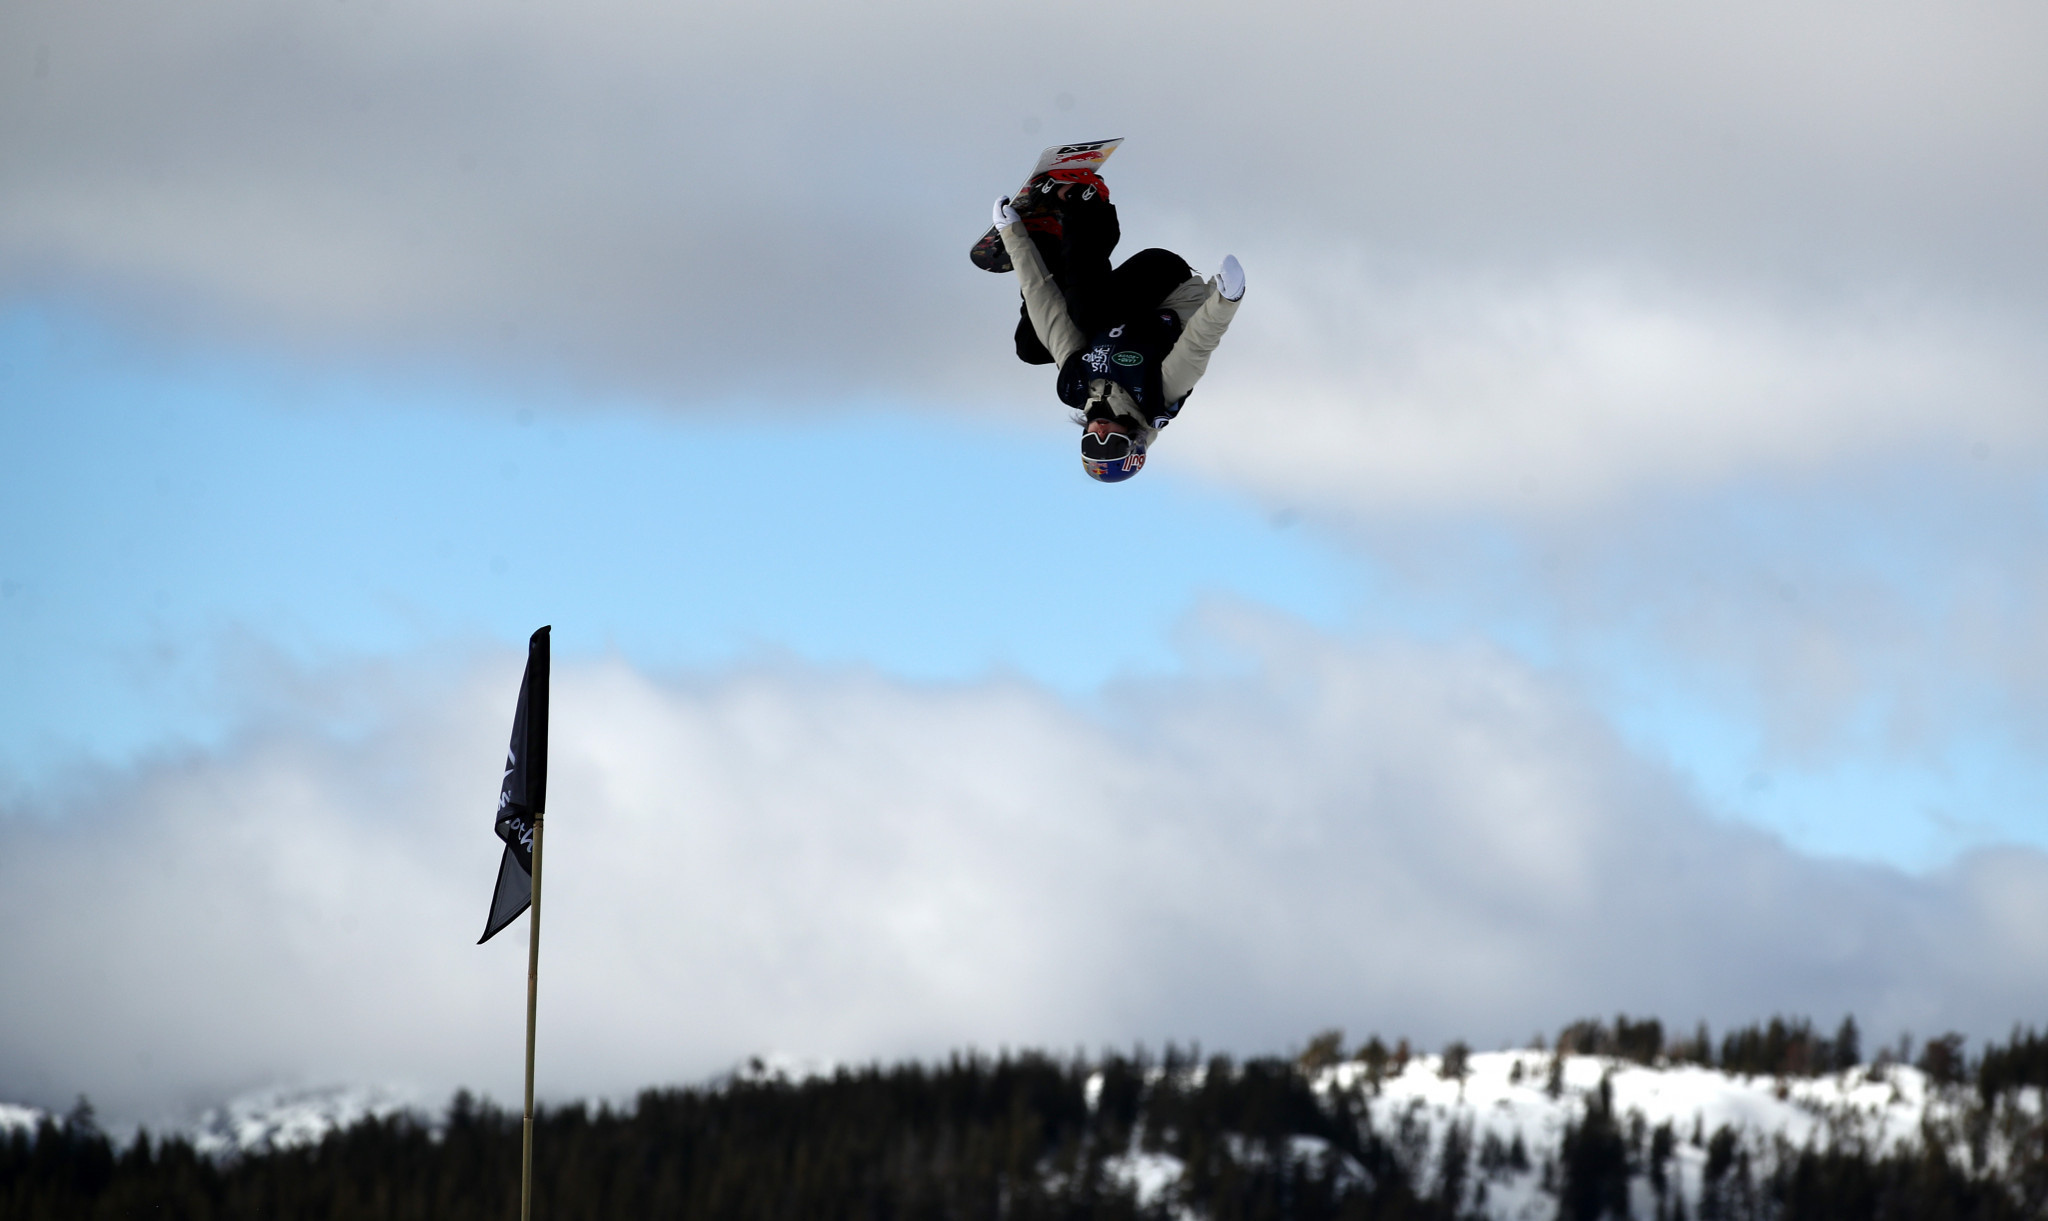 Katie Ormerod is the reigning women's overall World Cup slopestyle champion ©Getty Images